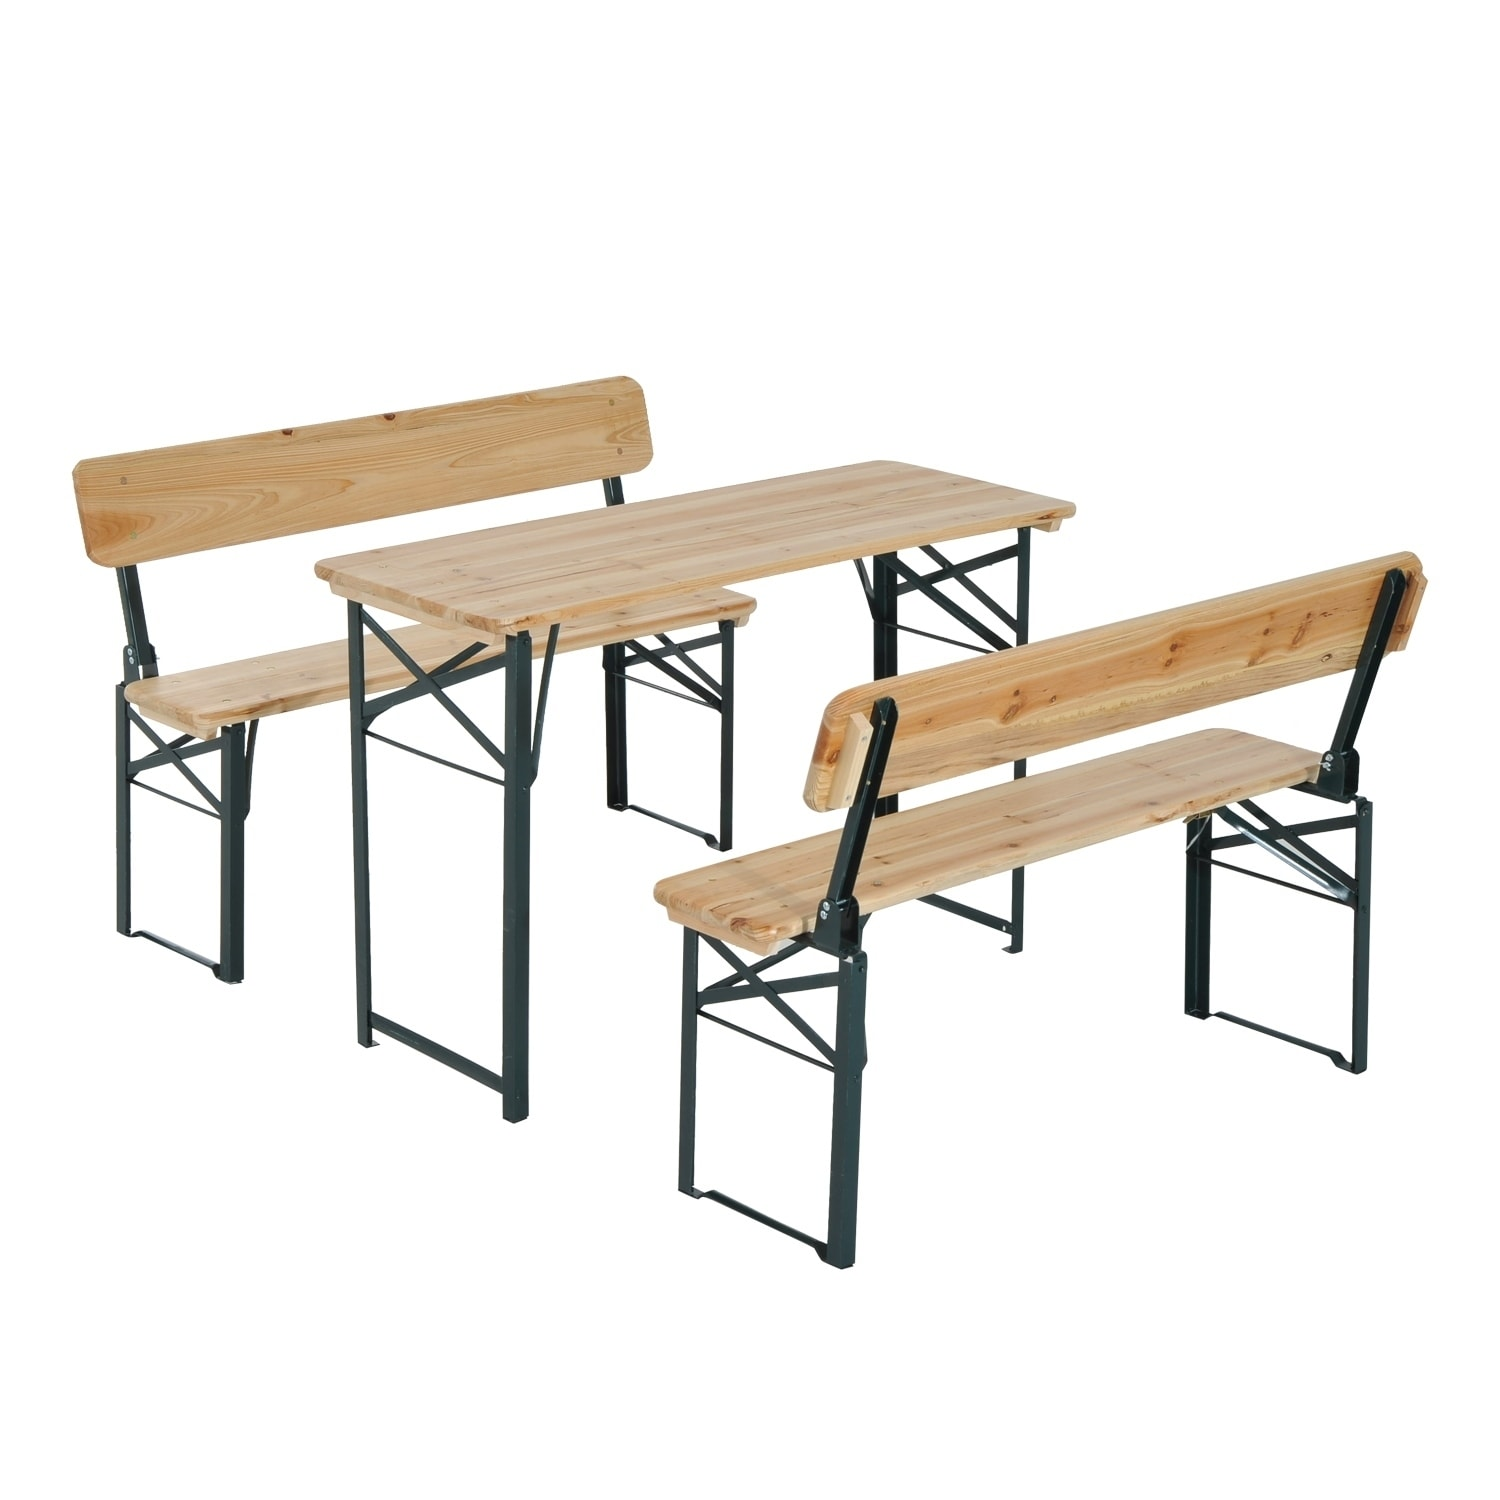 Outsunny 4u0027 Wooden Folding Picnic Table Set With Benches   Free Shipping  Today   Overstock   24265299